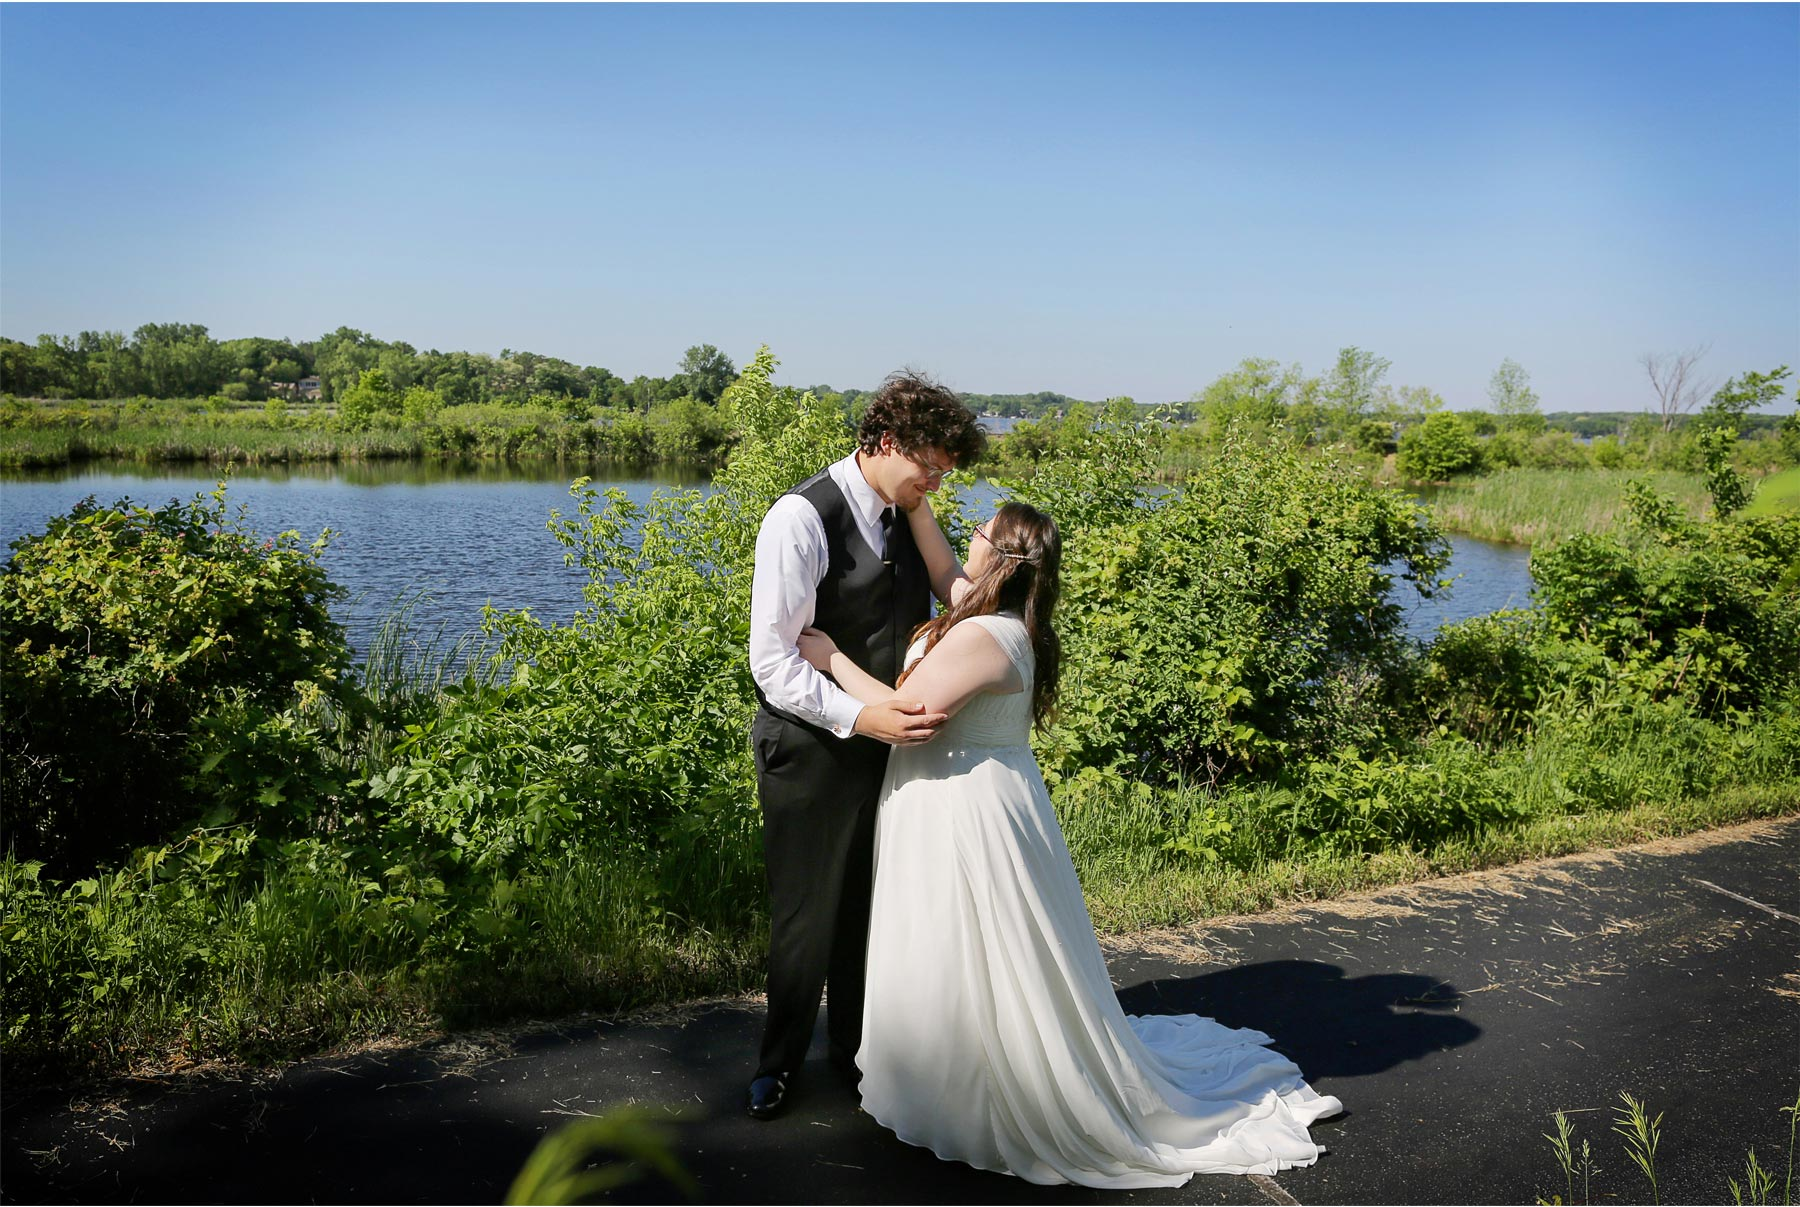 02-Minneapolis-Minnesota-Wedding-Andrew-Vick-Photography-Buck-Hill-Summer-Lake-First-Look-Ashley-and-Matt.jpg